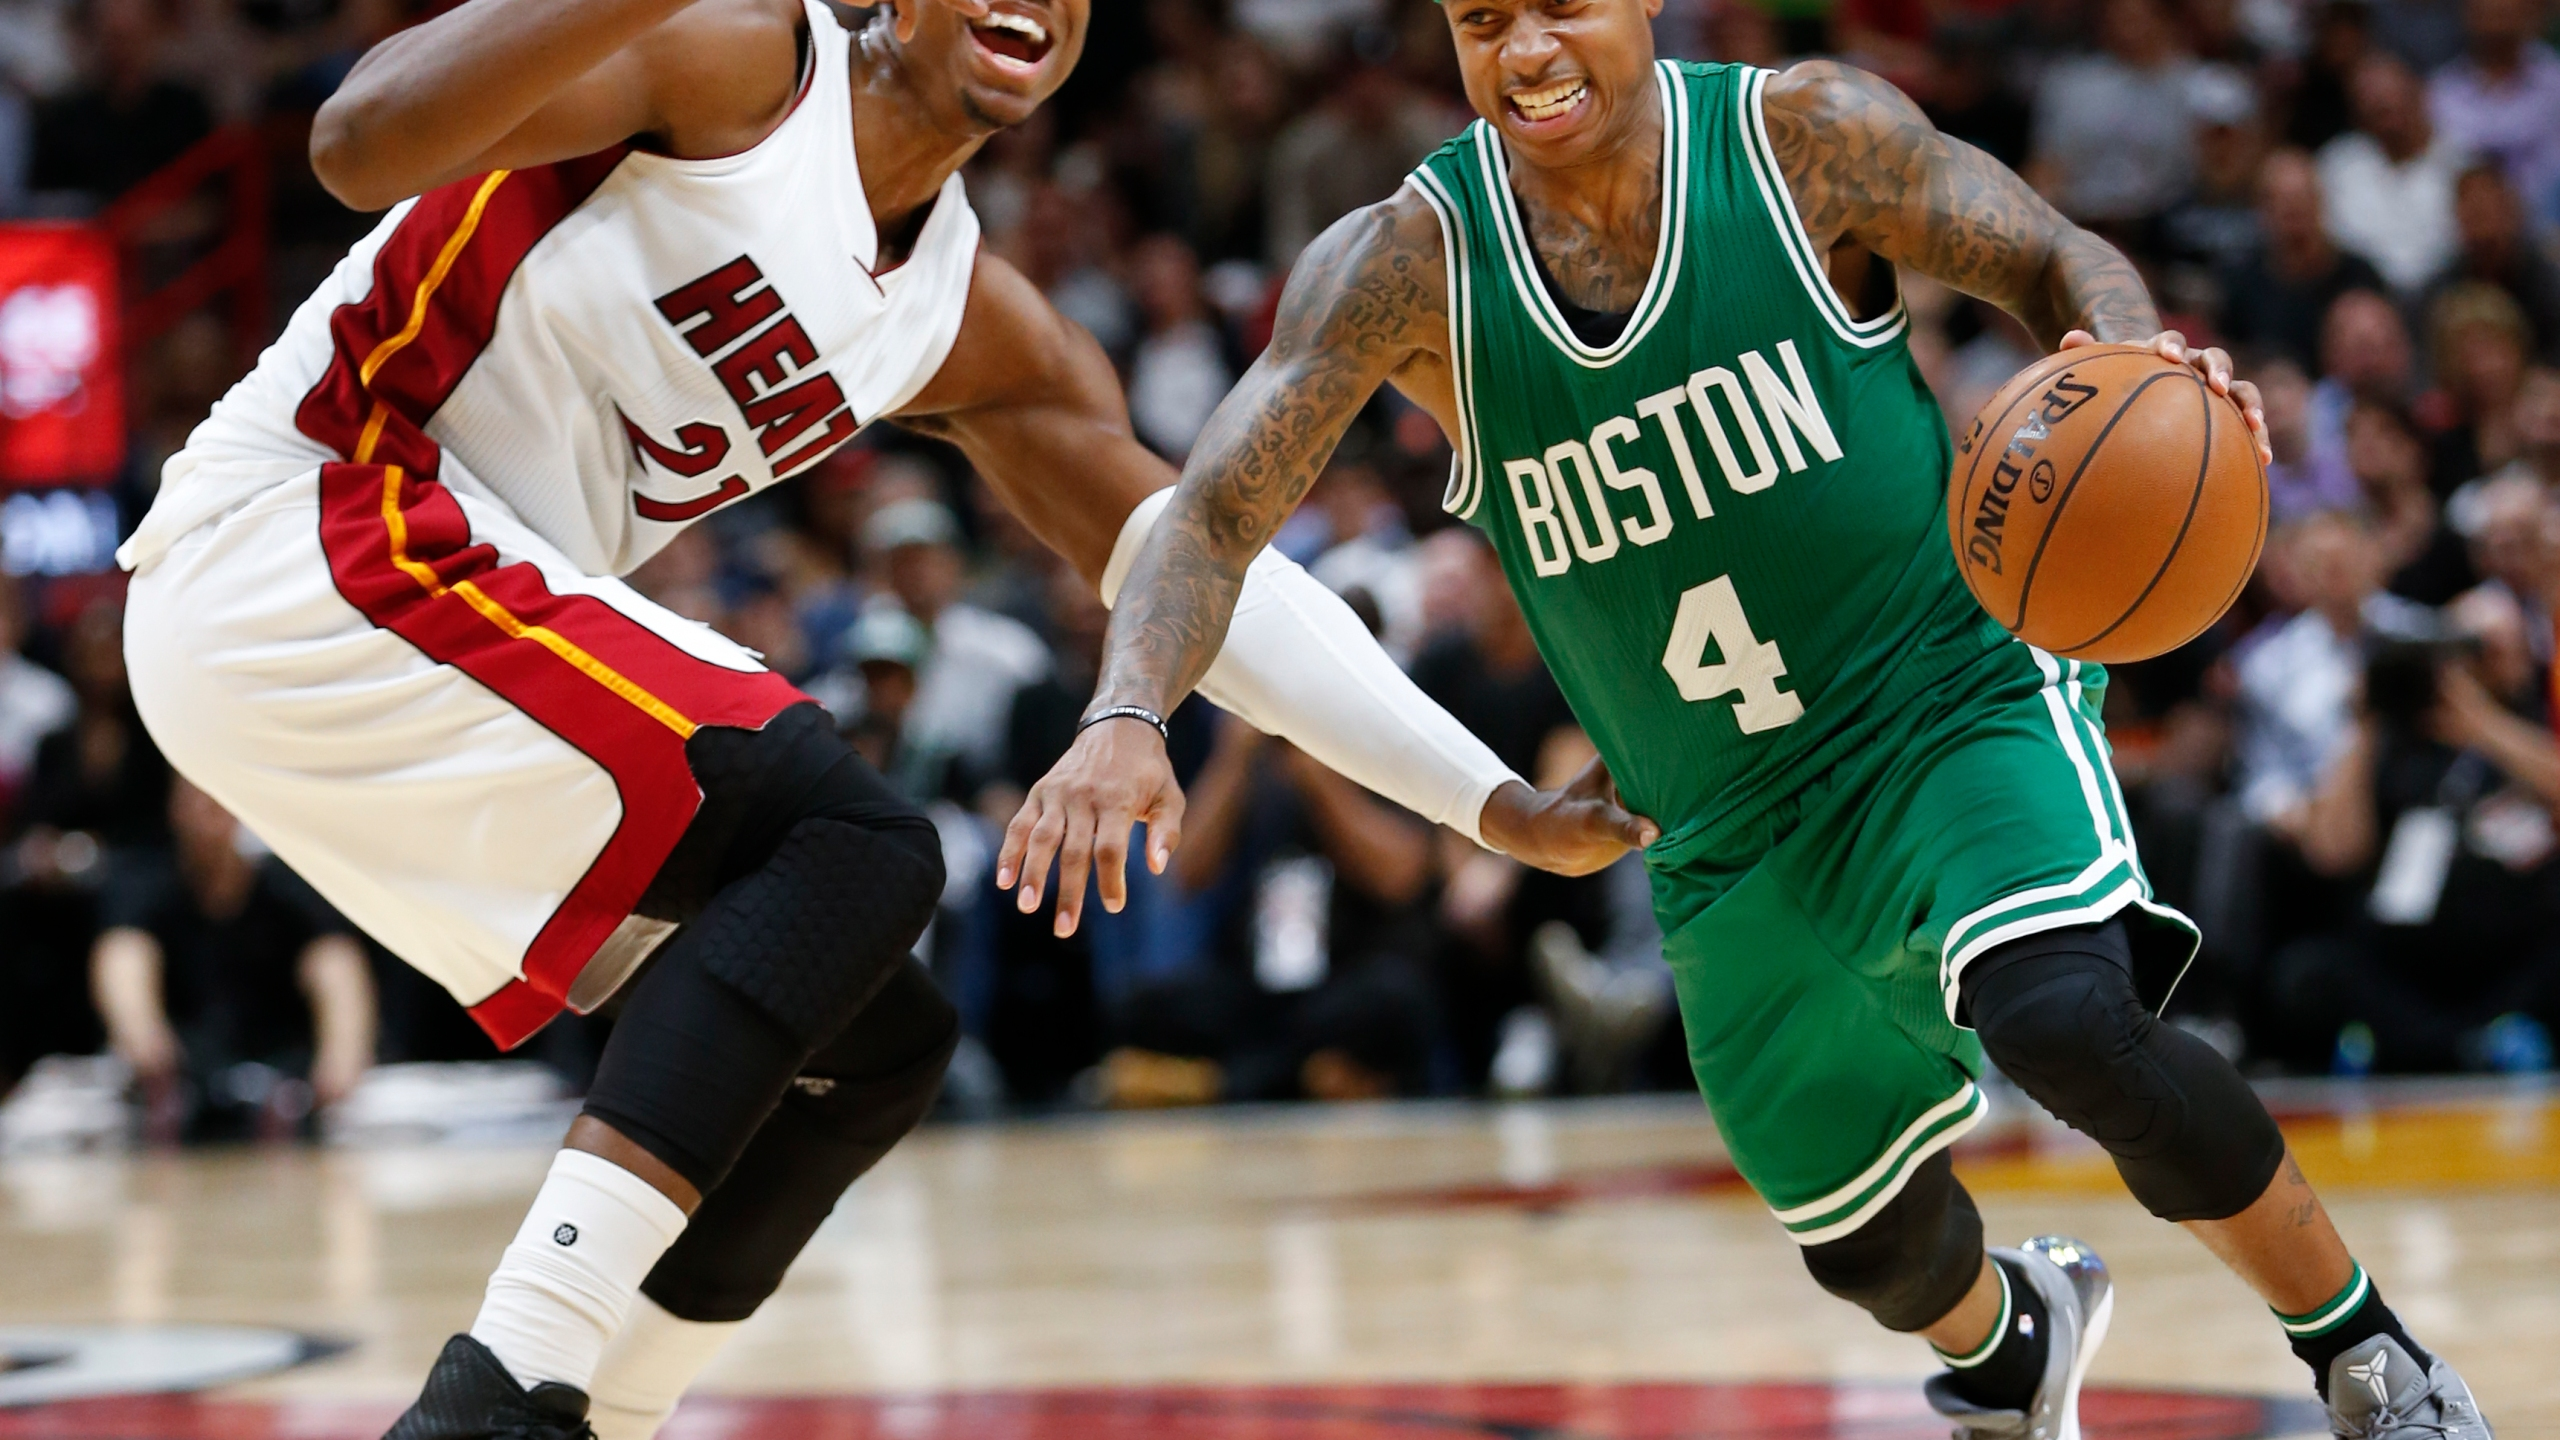 Hassan Whiteside, Isaiah Thomas